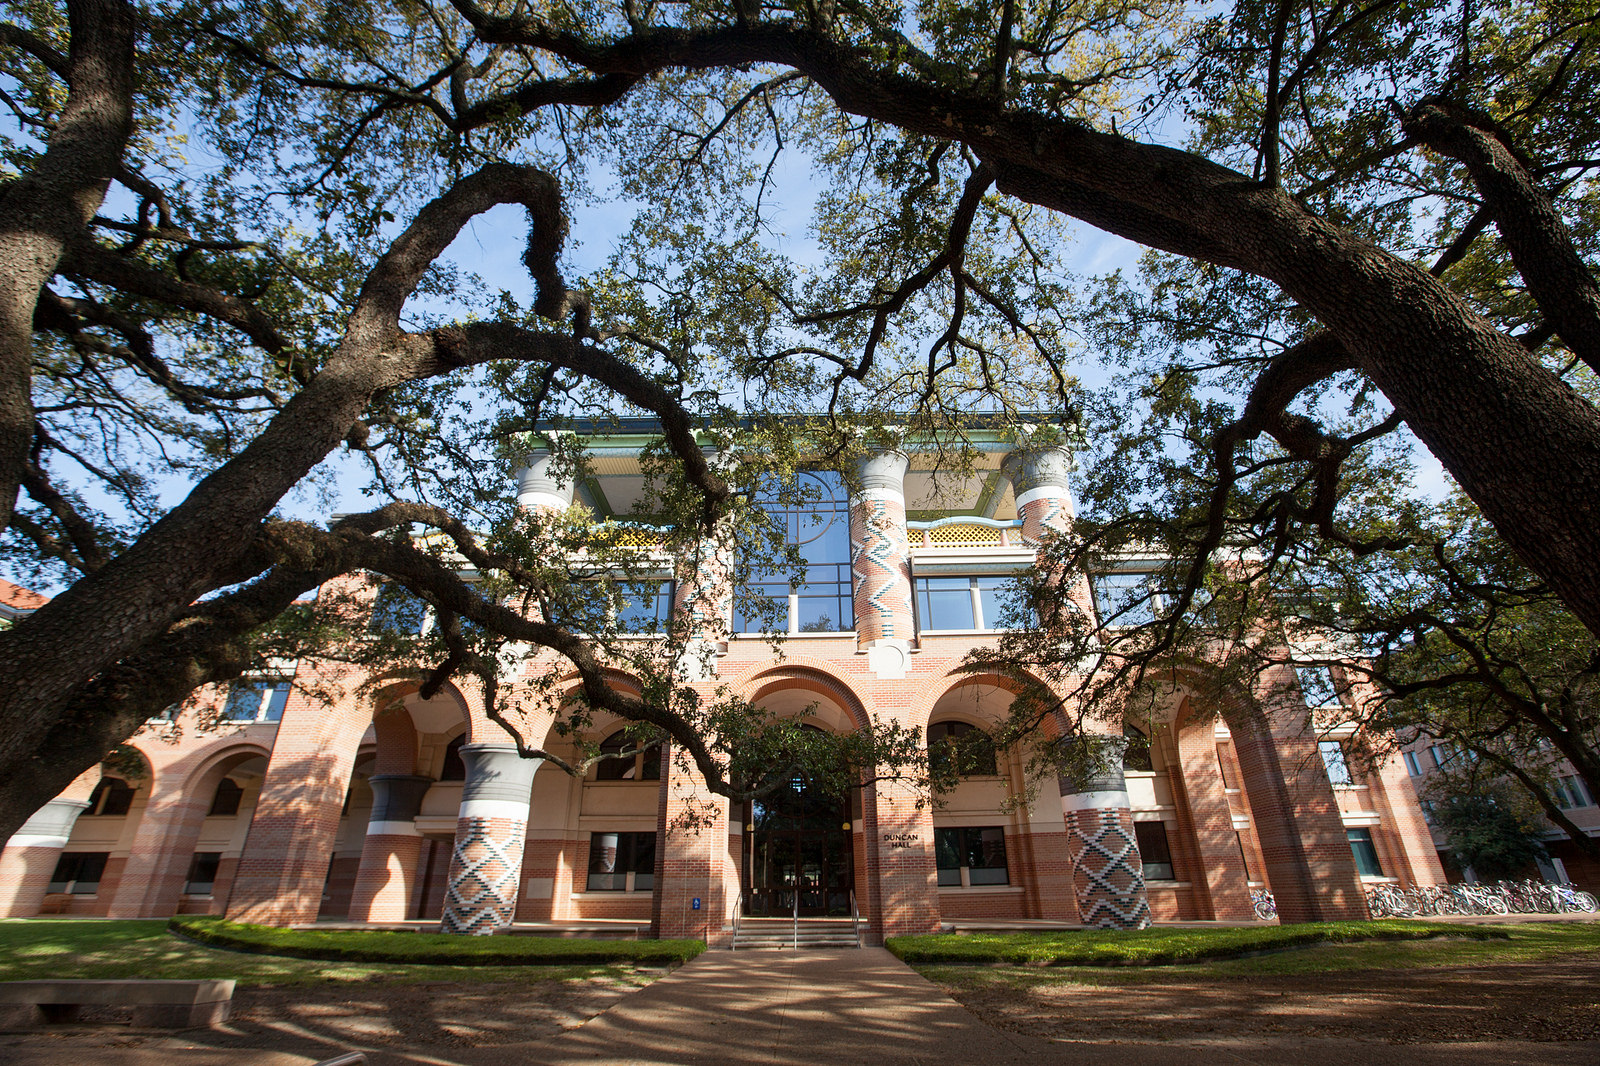 Duncal Hall at Rice University | © Tendenci Software/Flickr